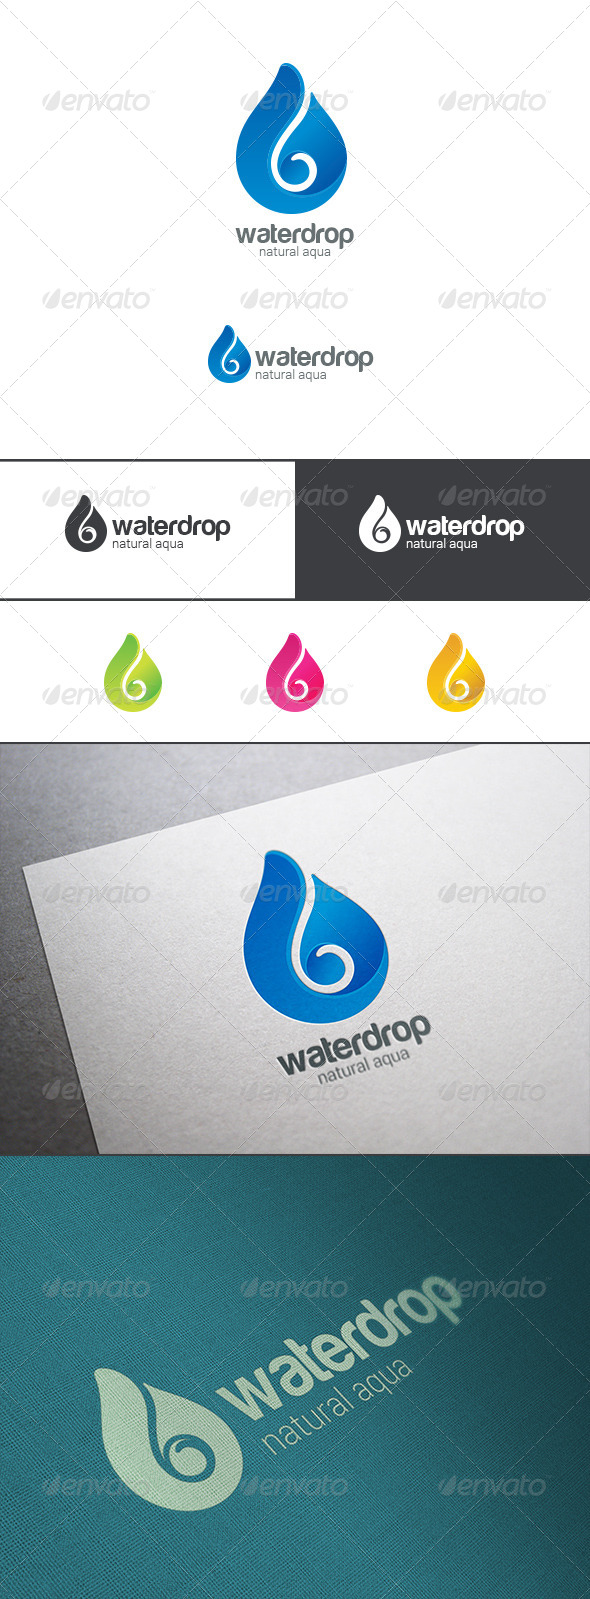 GraphicRiver Waterdrop Logo Mineral Water Droplet 8102724